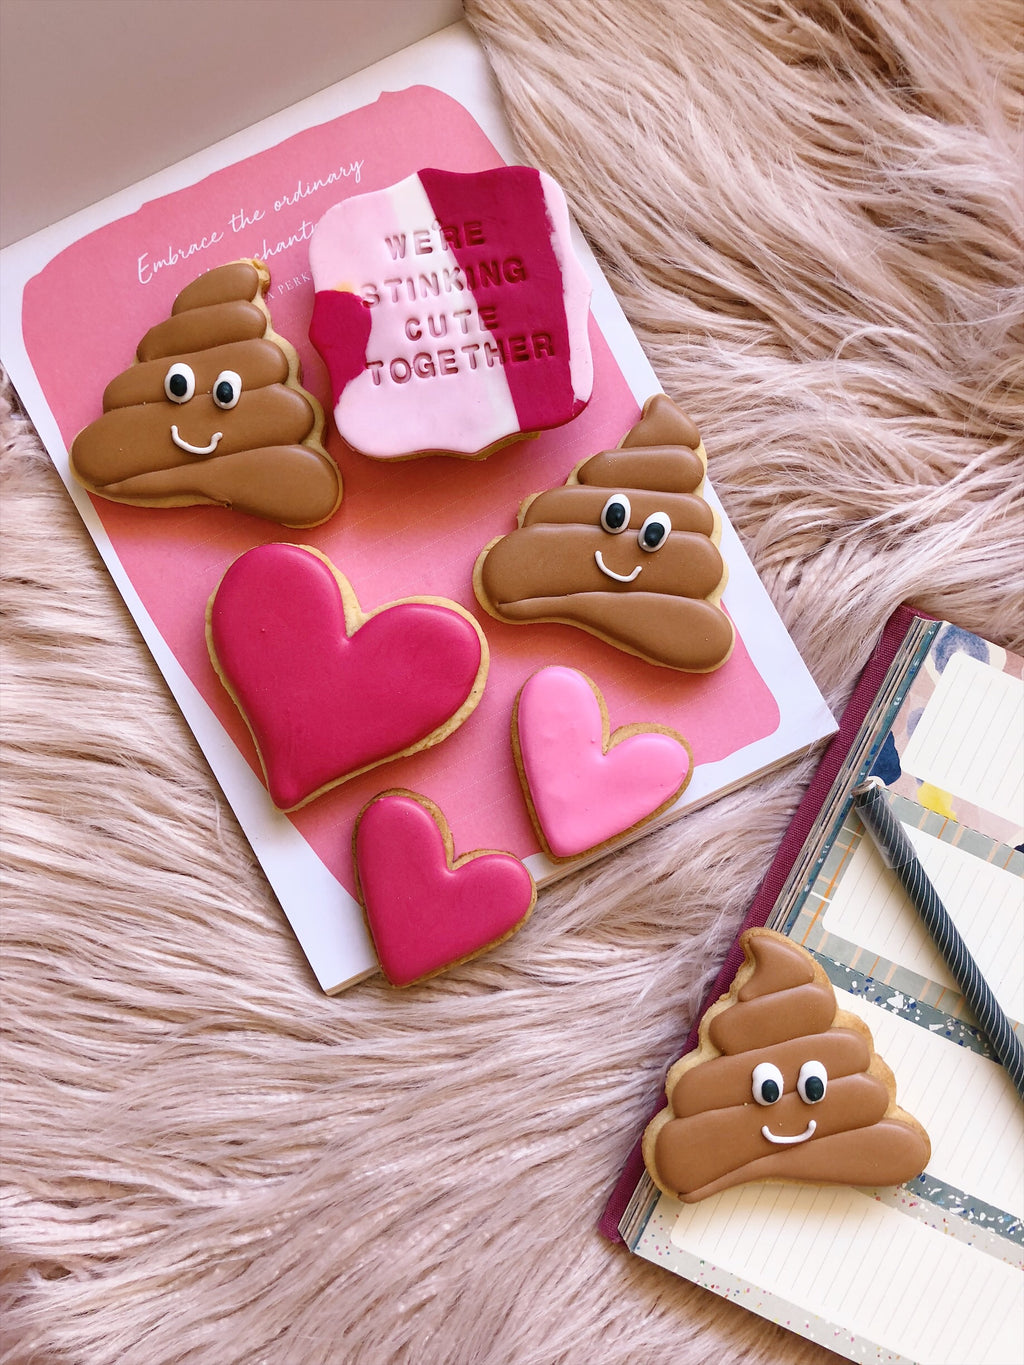 We're Stinkin' Cute Together – Poop & Hearts Cookies - Sugar Rush by Steph